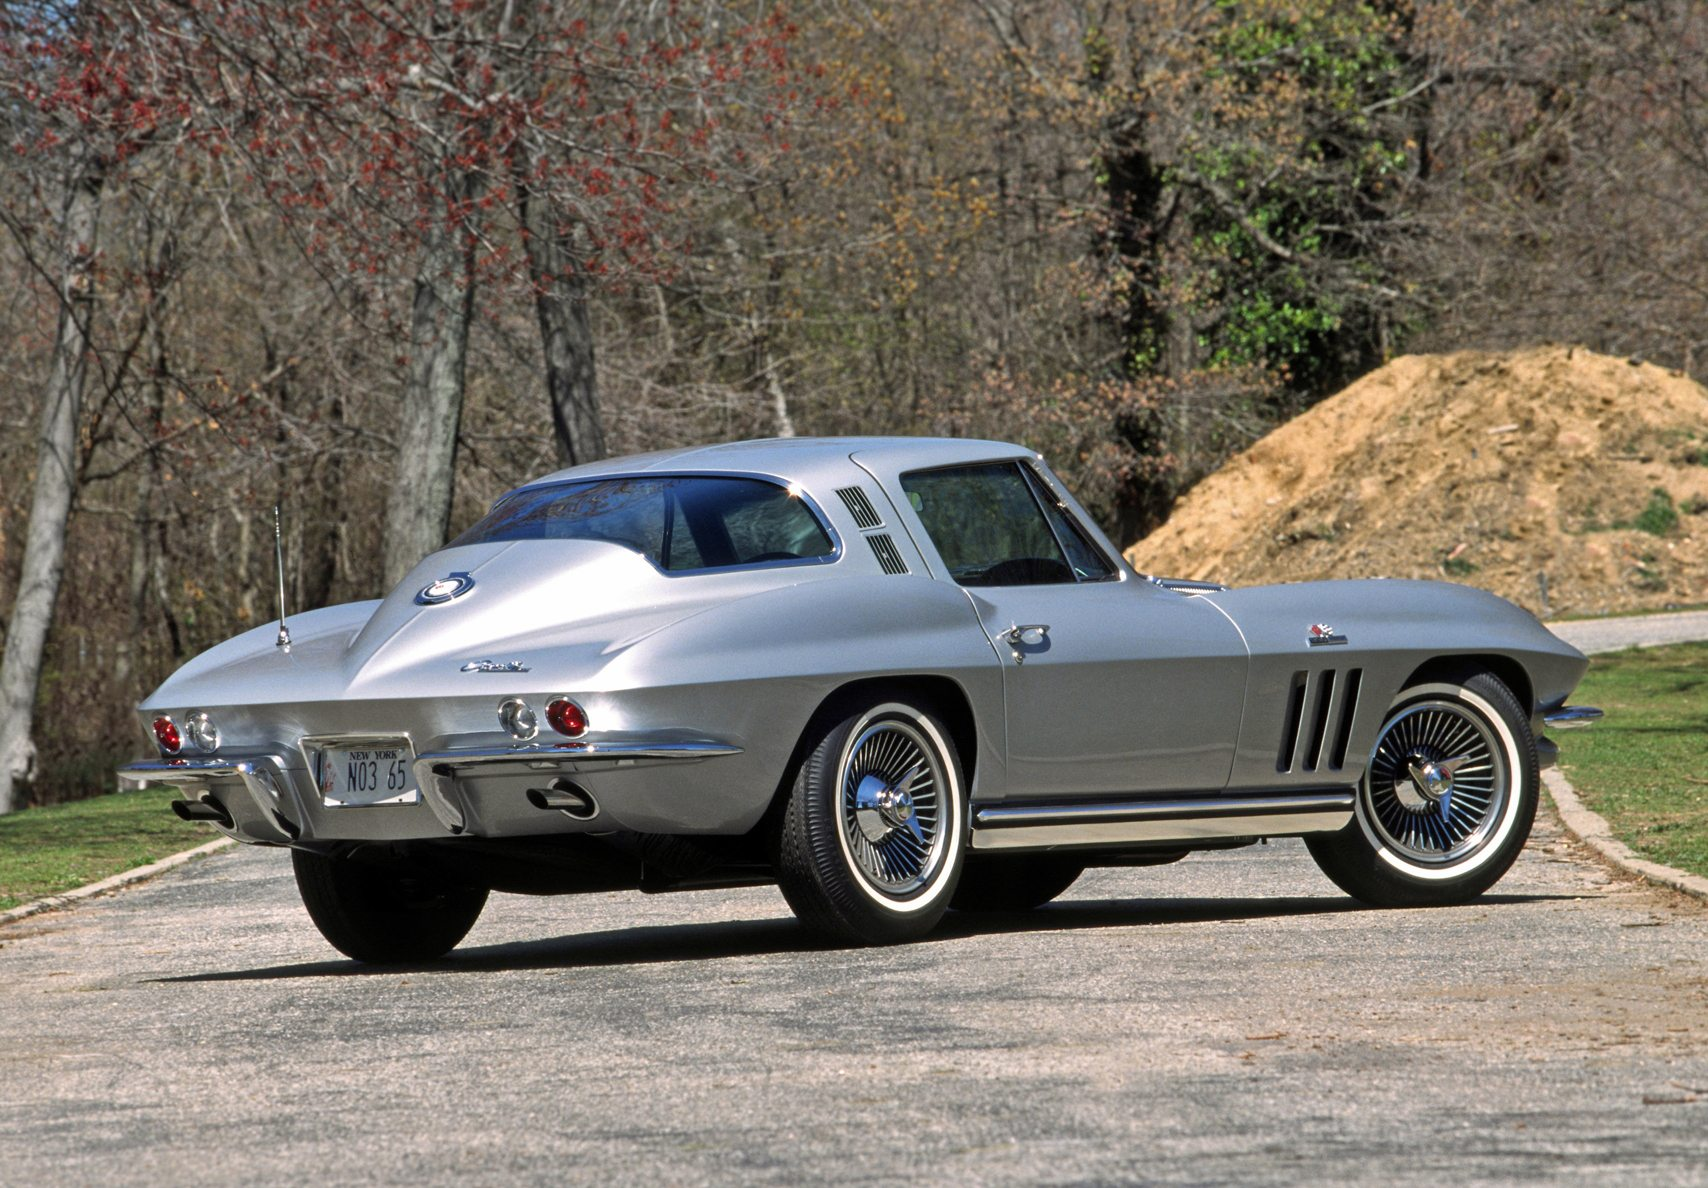 1959 Taraschi 1100 FJ photo in addition 1967 C2 Corvette Image Gallery likewise 1999 Chevy Vortec Engine View also 19621963 Chevygmc Ls Swap in addition 1995 C4 Corvette. on 1964 corvette specifications